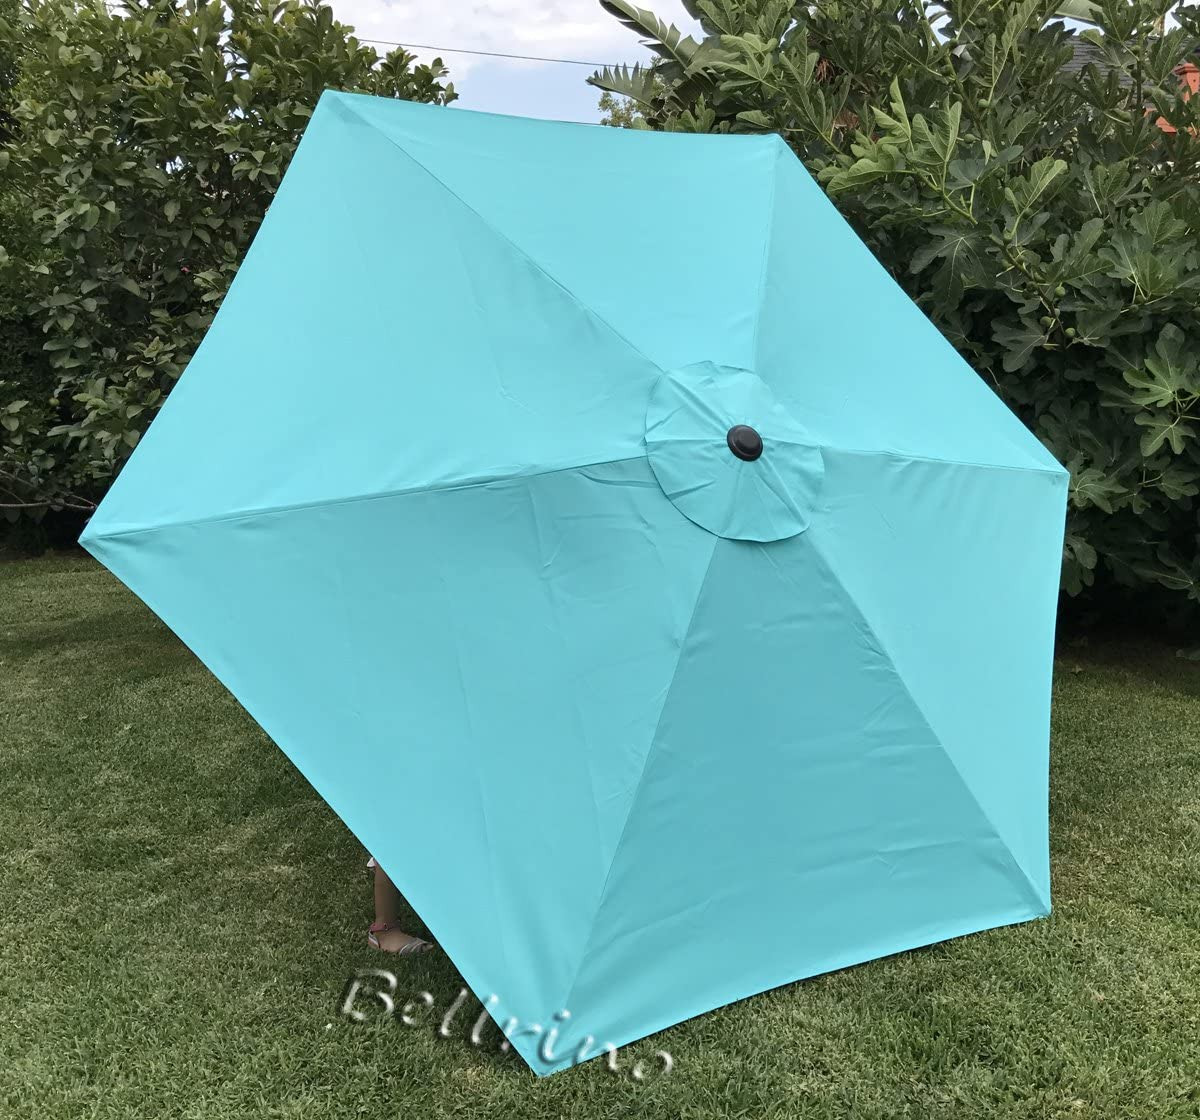 BELLRINO Replacement Peacock Blue Umbrella Canopy for 9 ft 6 Ribs (Canopy Only) (Peacock BLUE-96)